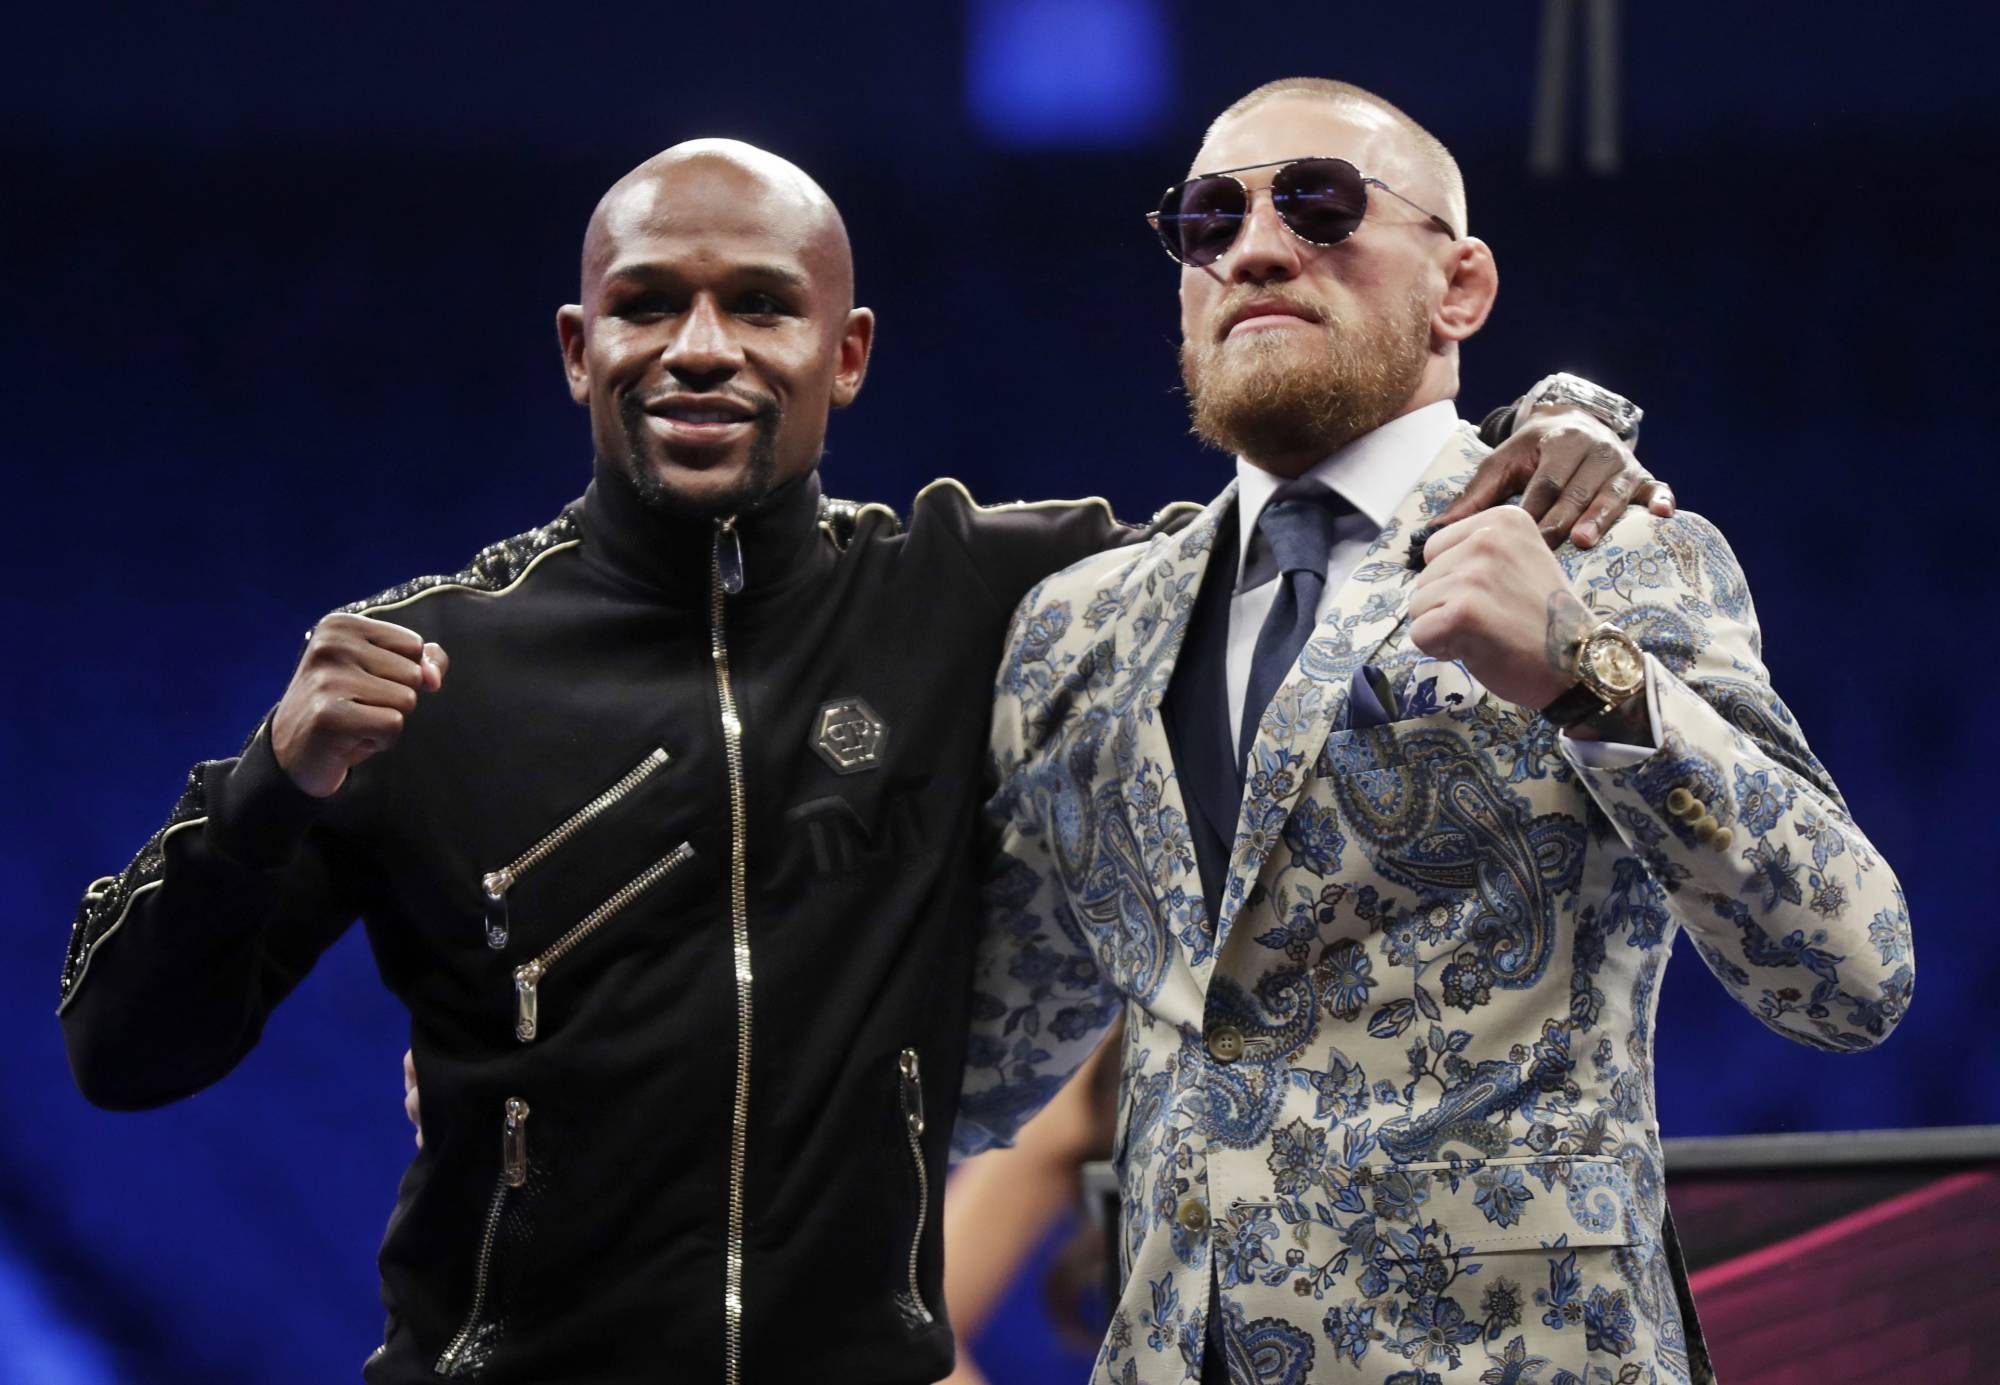 Smiles all around as Mayweather, McGregor savor fight | WTOP